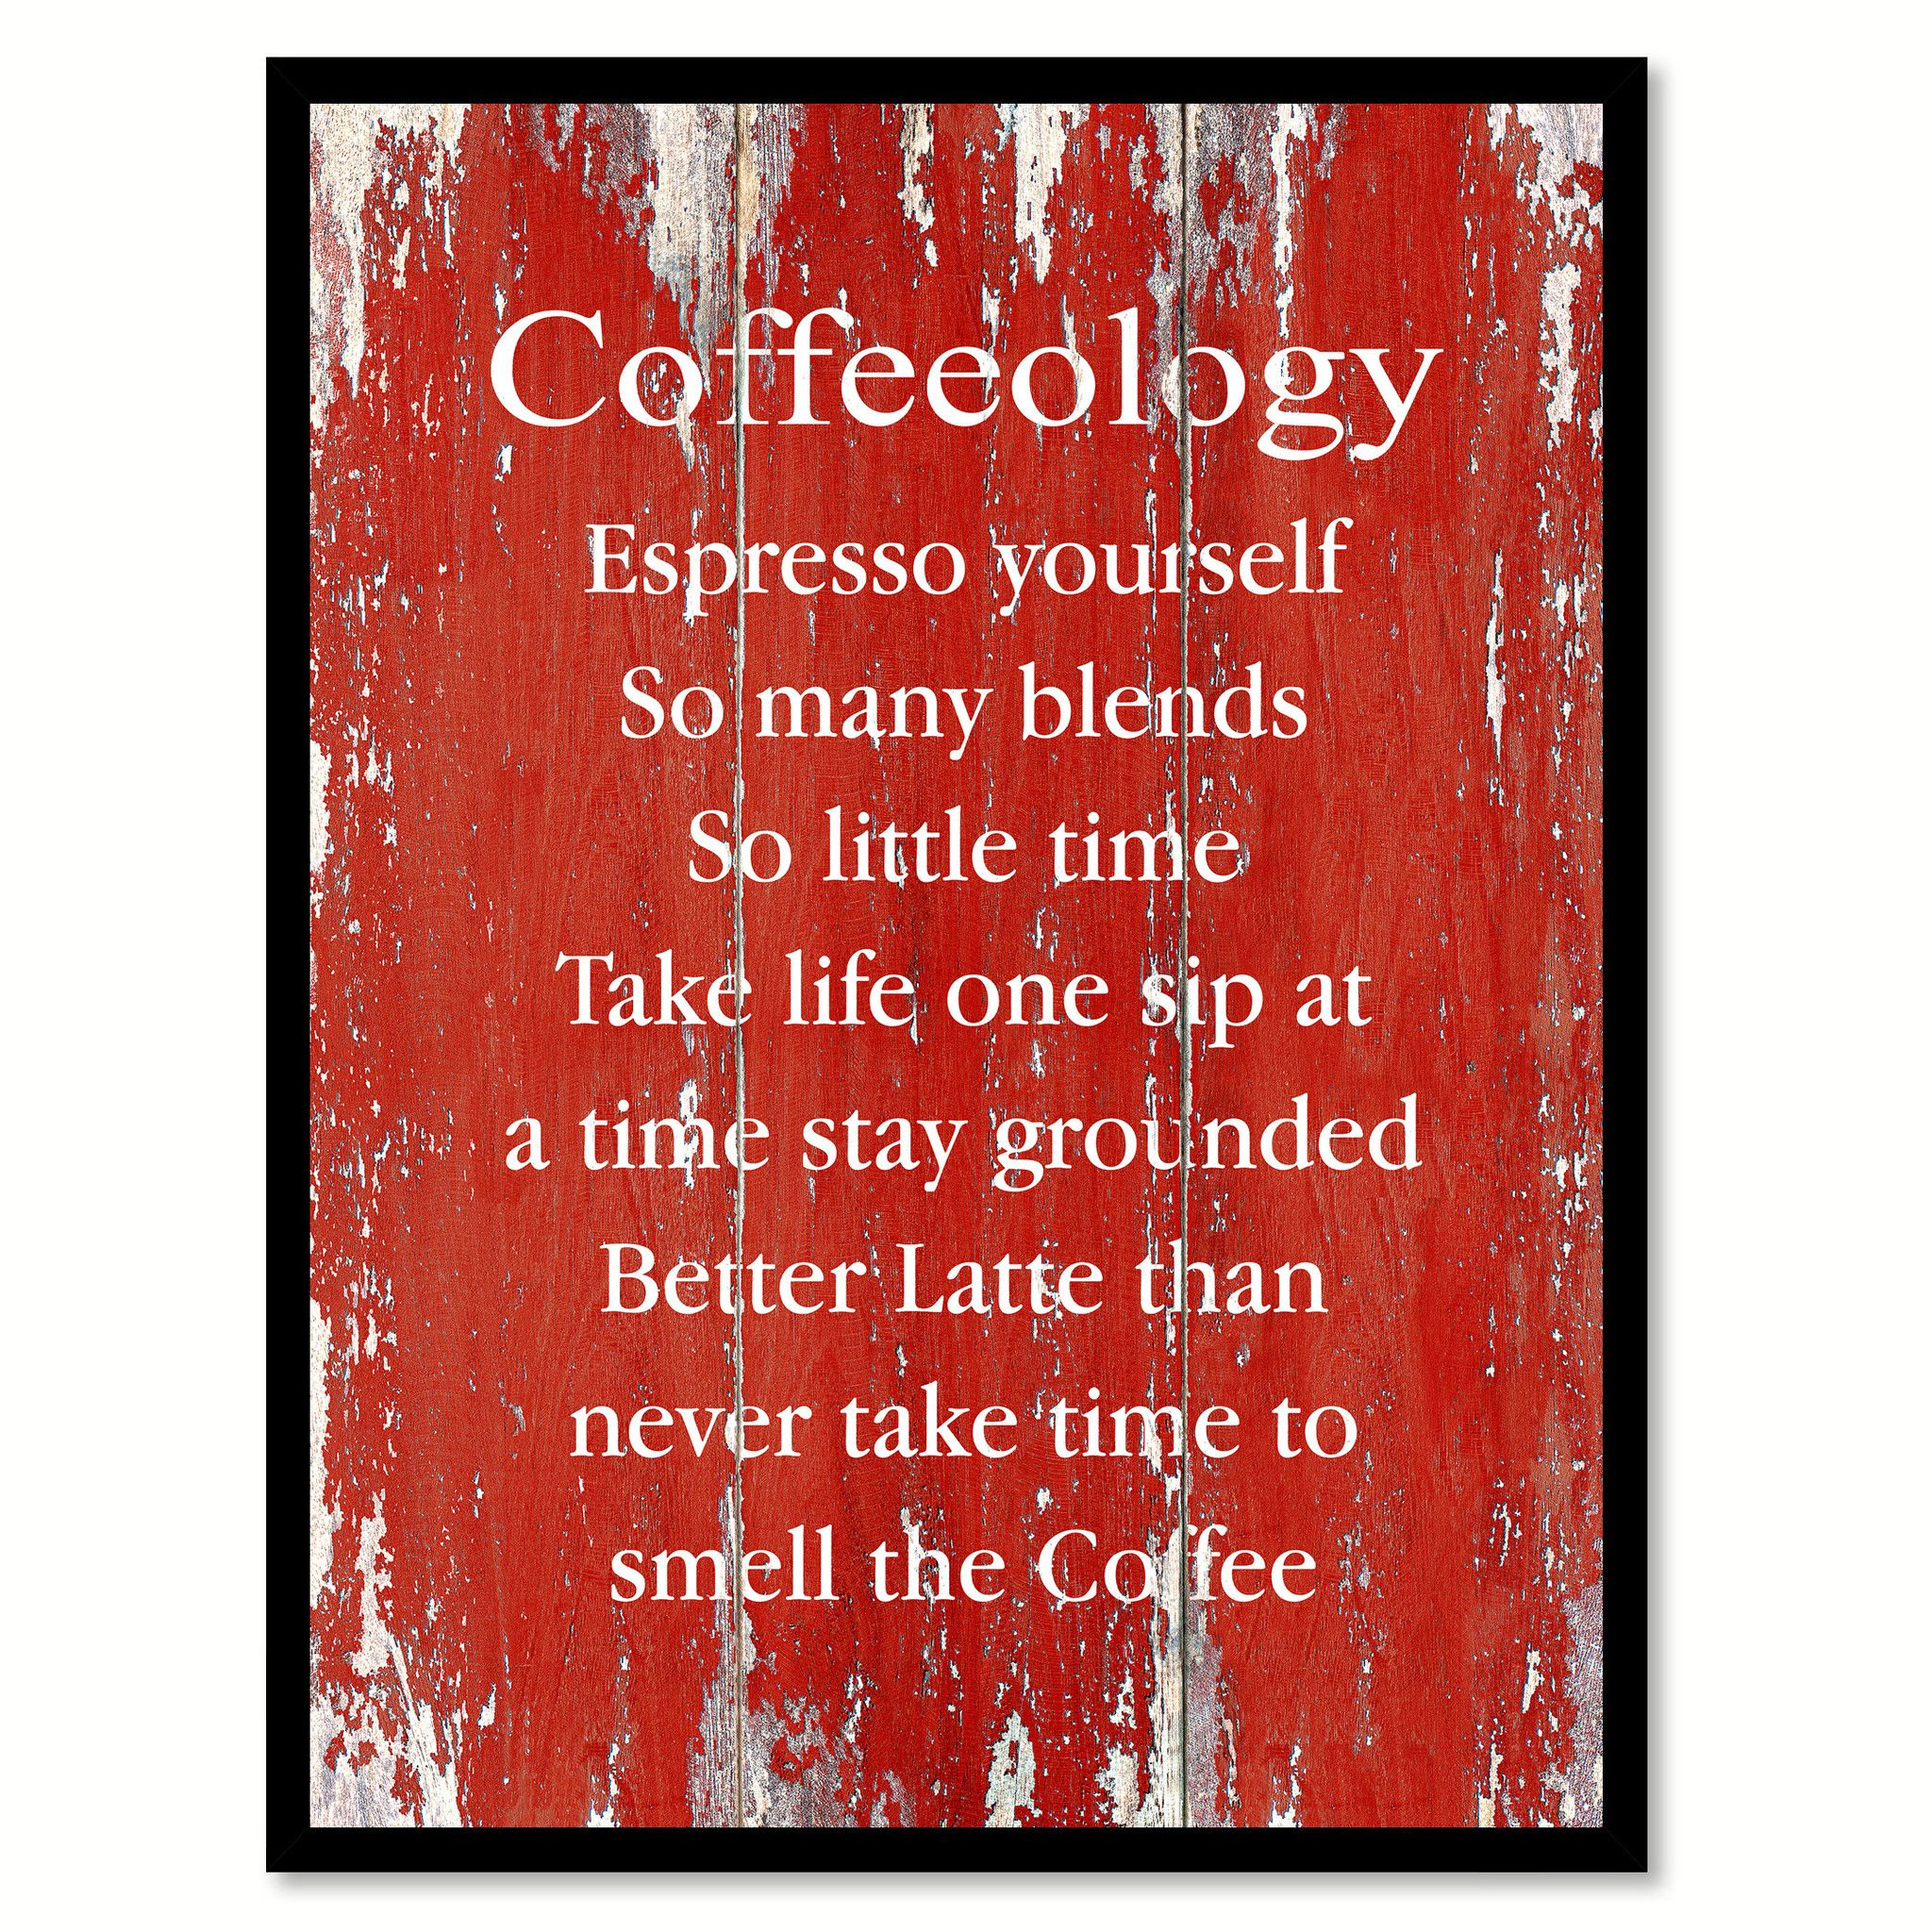 Coffeeology Espresso Yourself So Many Blends So Little Time Take Life One  Sip At A Time Stay Grounded Better Latte Than Never Take Time To Smell The  Coffee ...